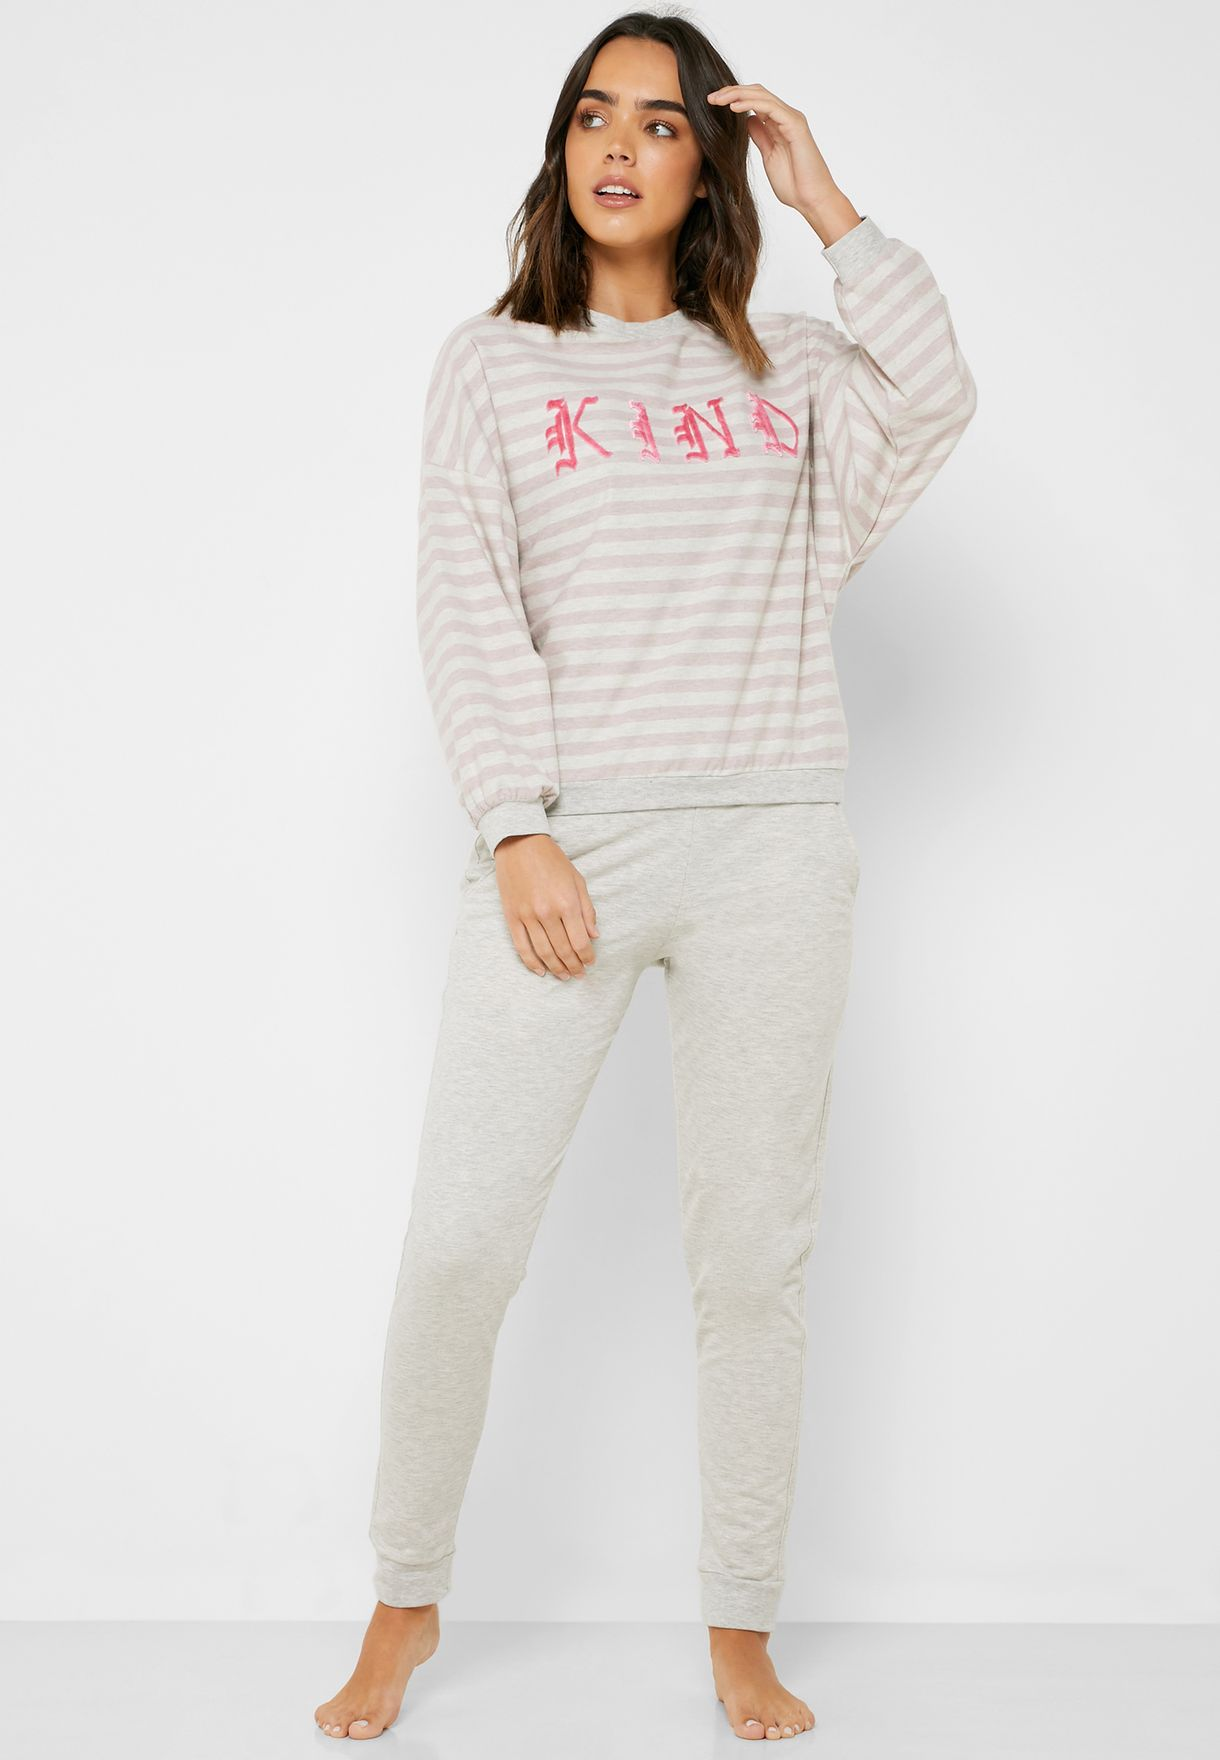 Slogan Oversize Striped T-Shirt & Cuff Pyjama Set